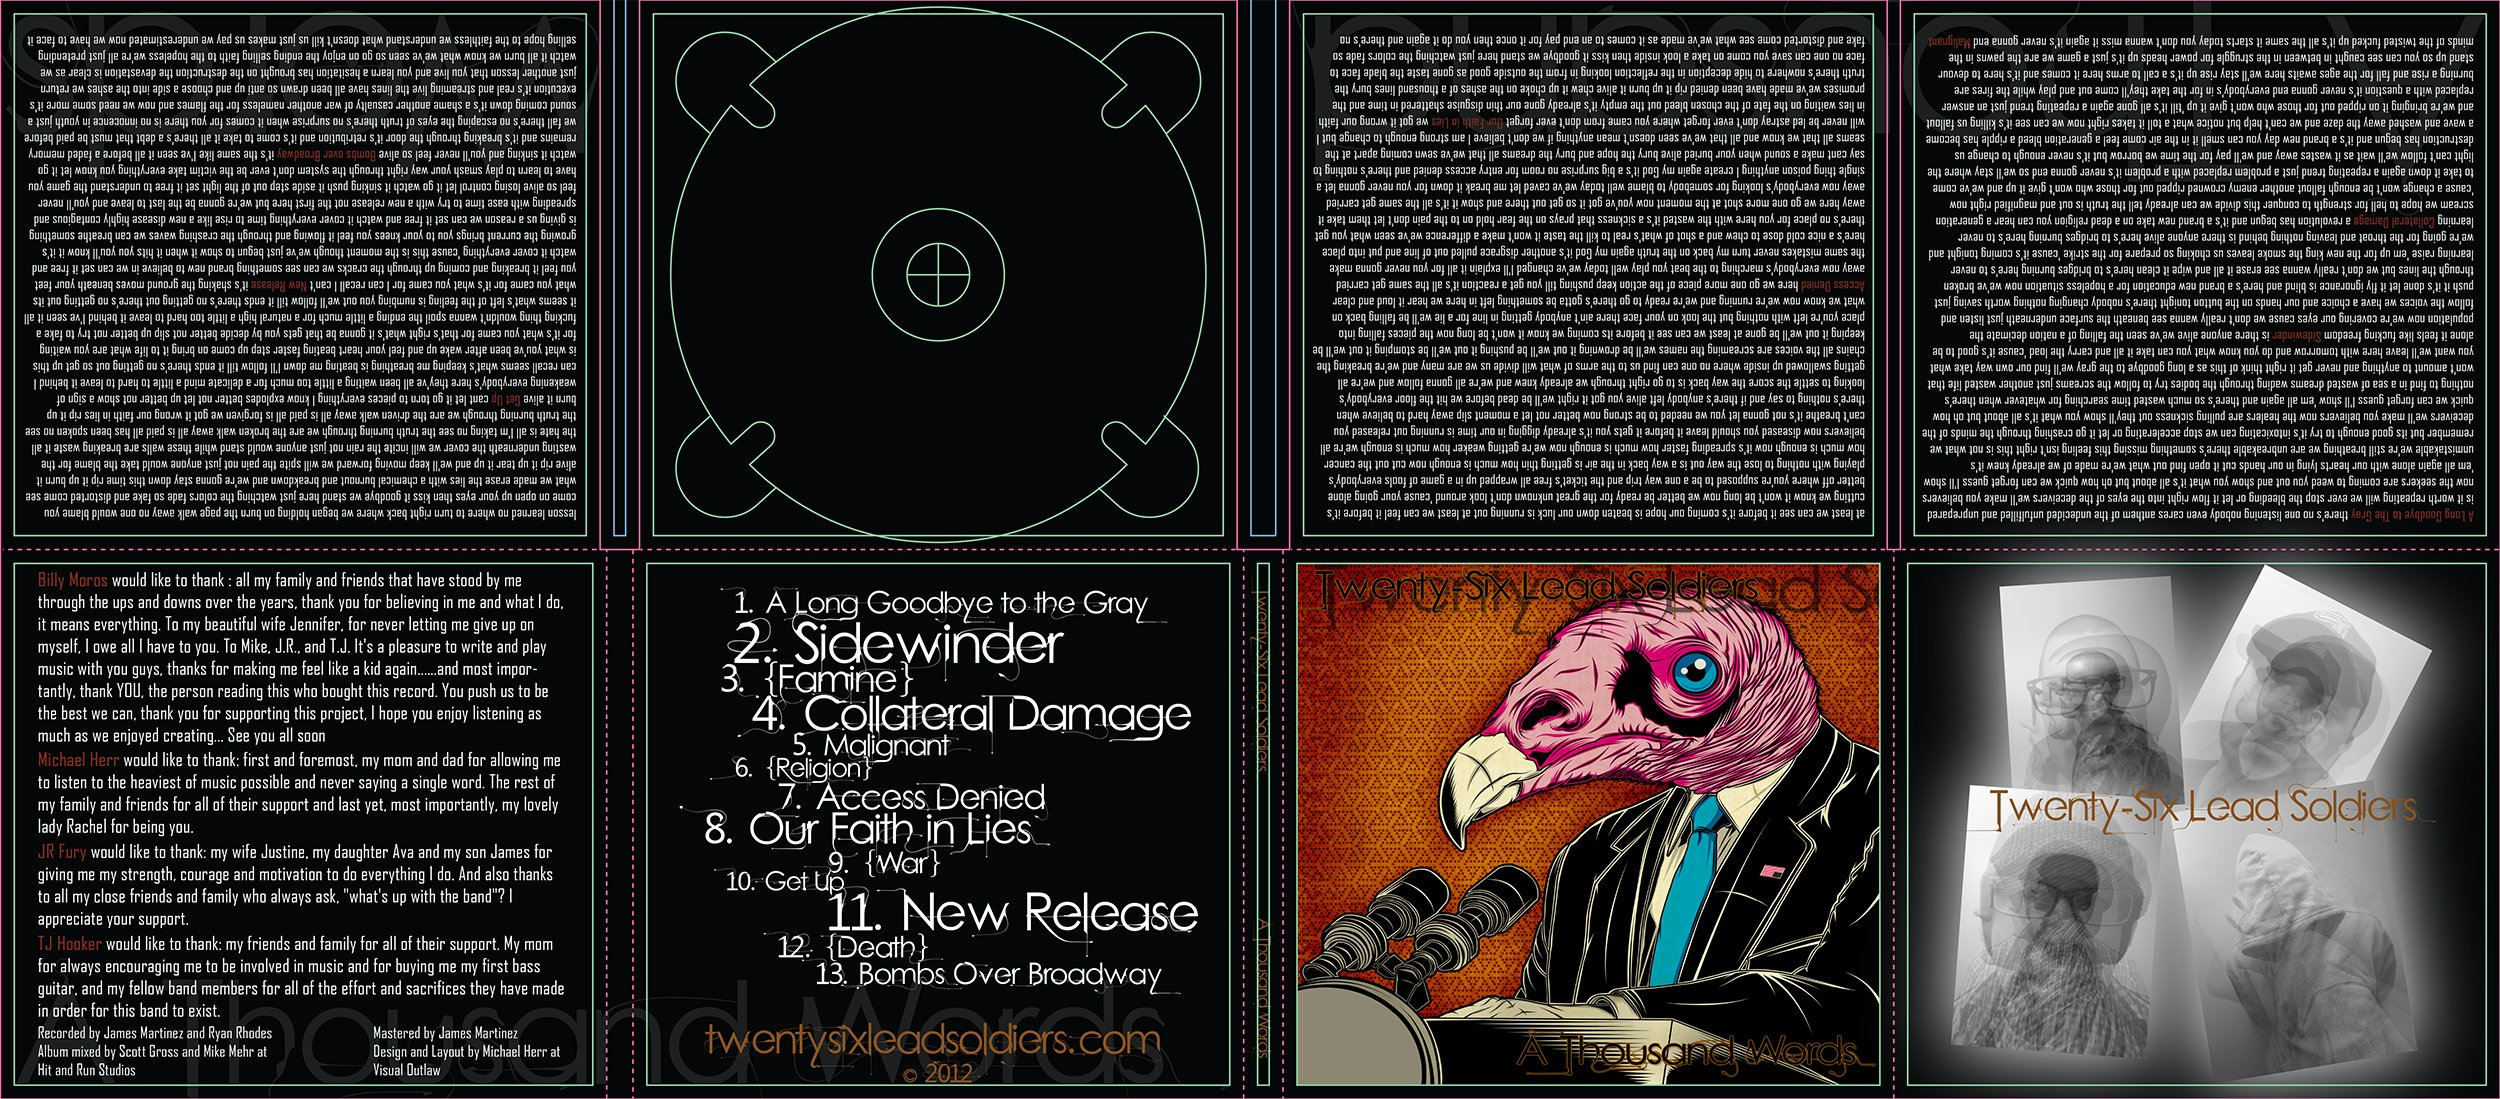 CD Packaging Layout